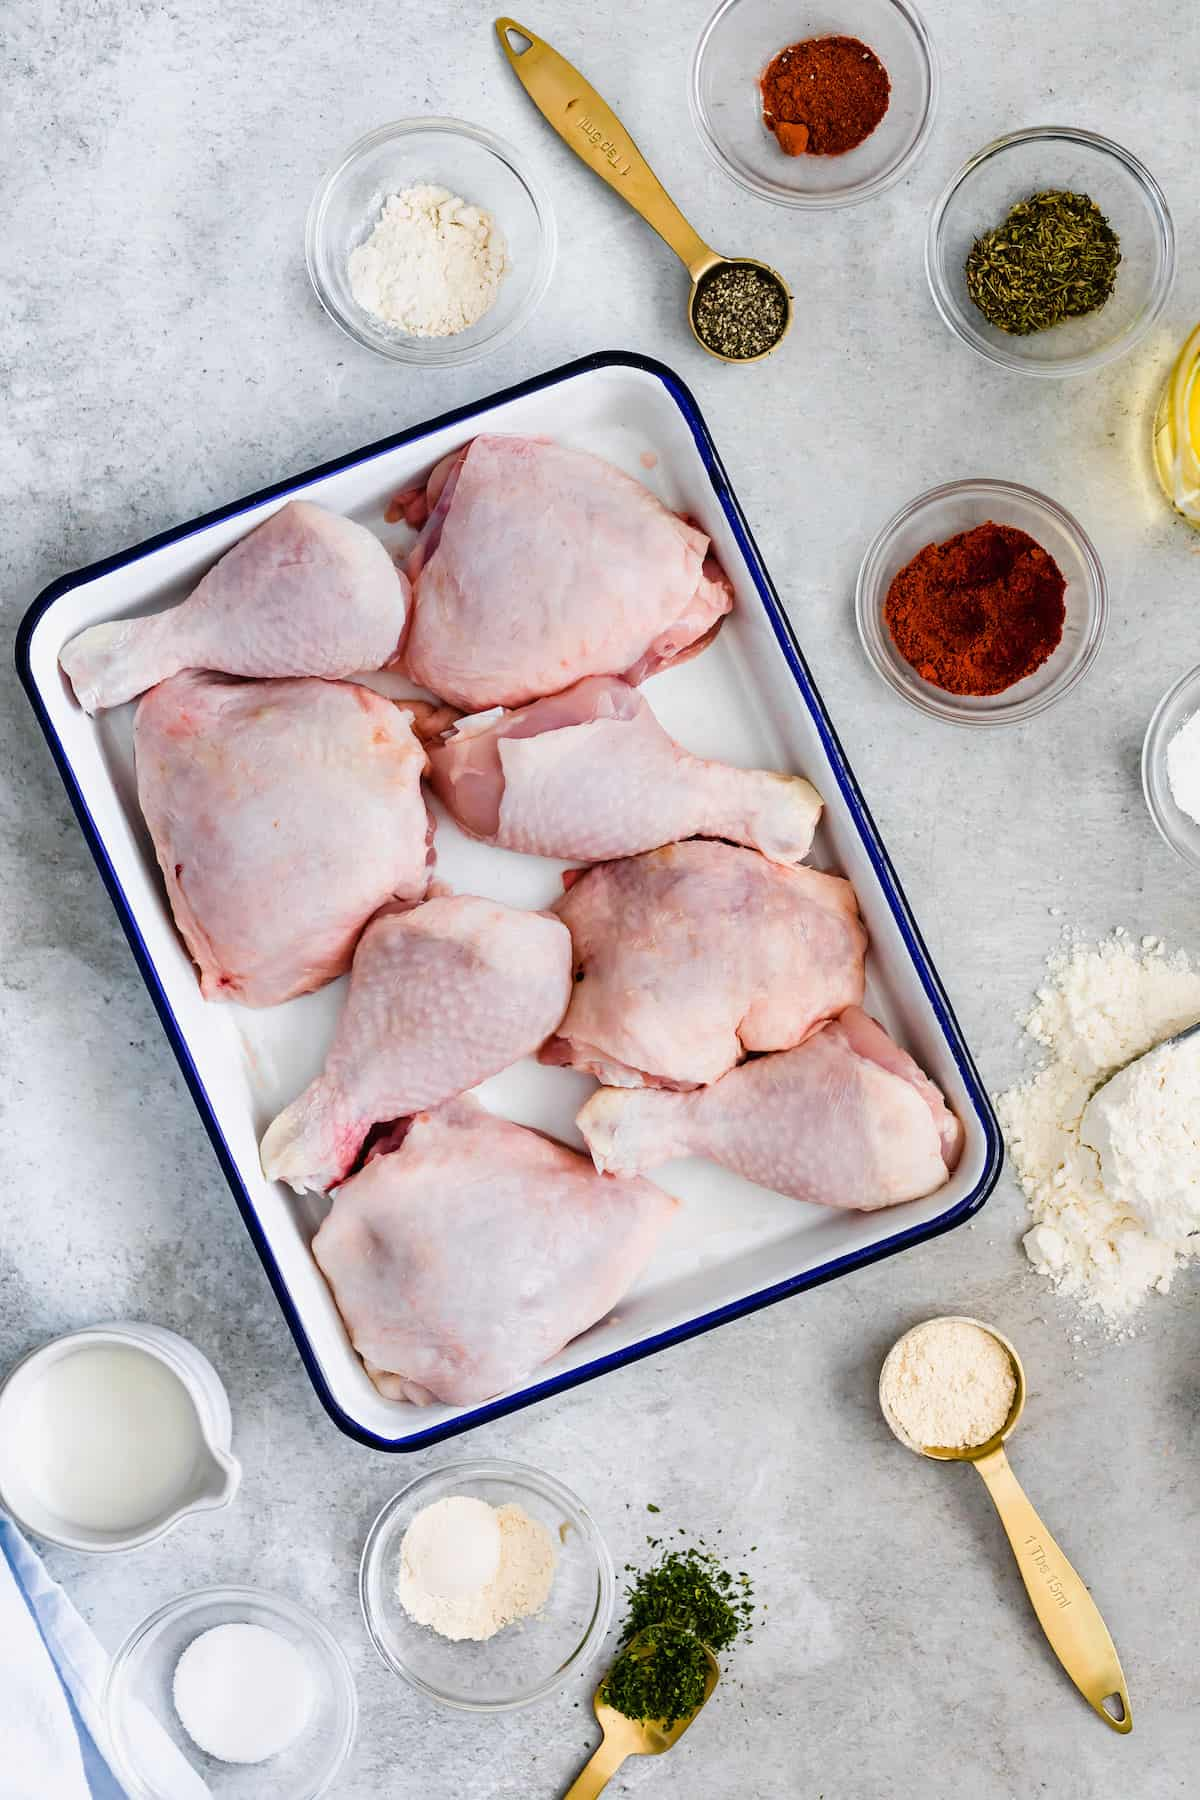 Eight Chicken Thighs and Drumsticks in a White and Blue Pan Surrounded by Herbs, Spices and Buttermilk